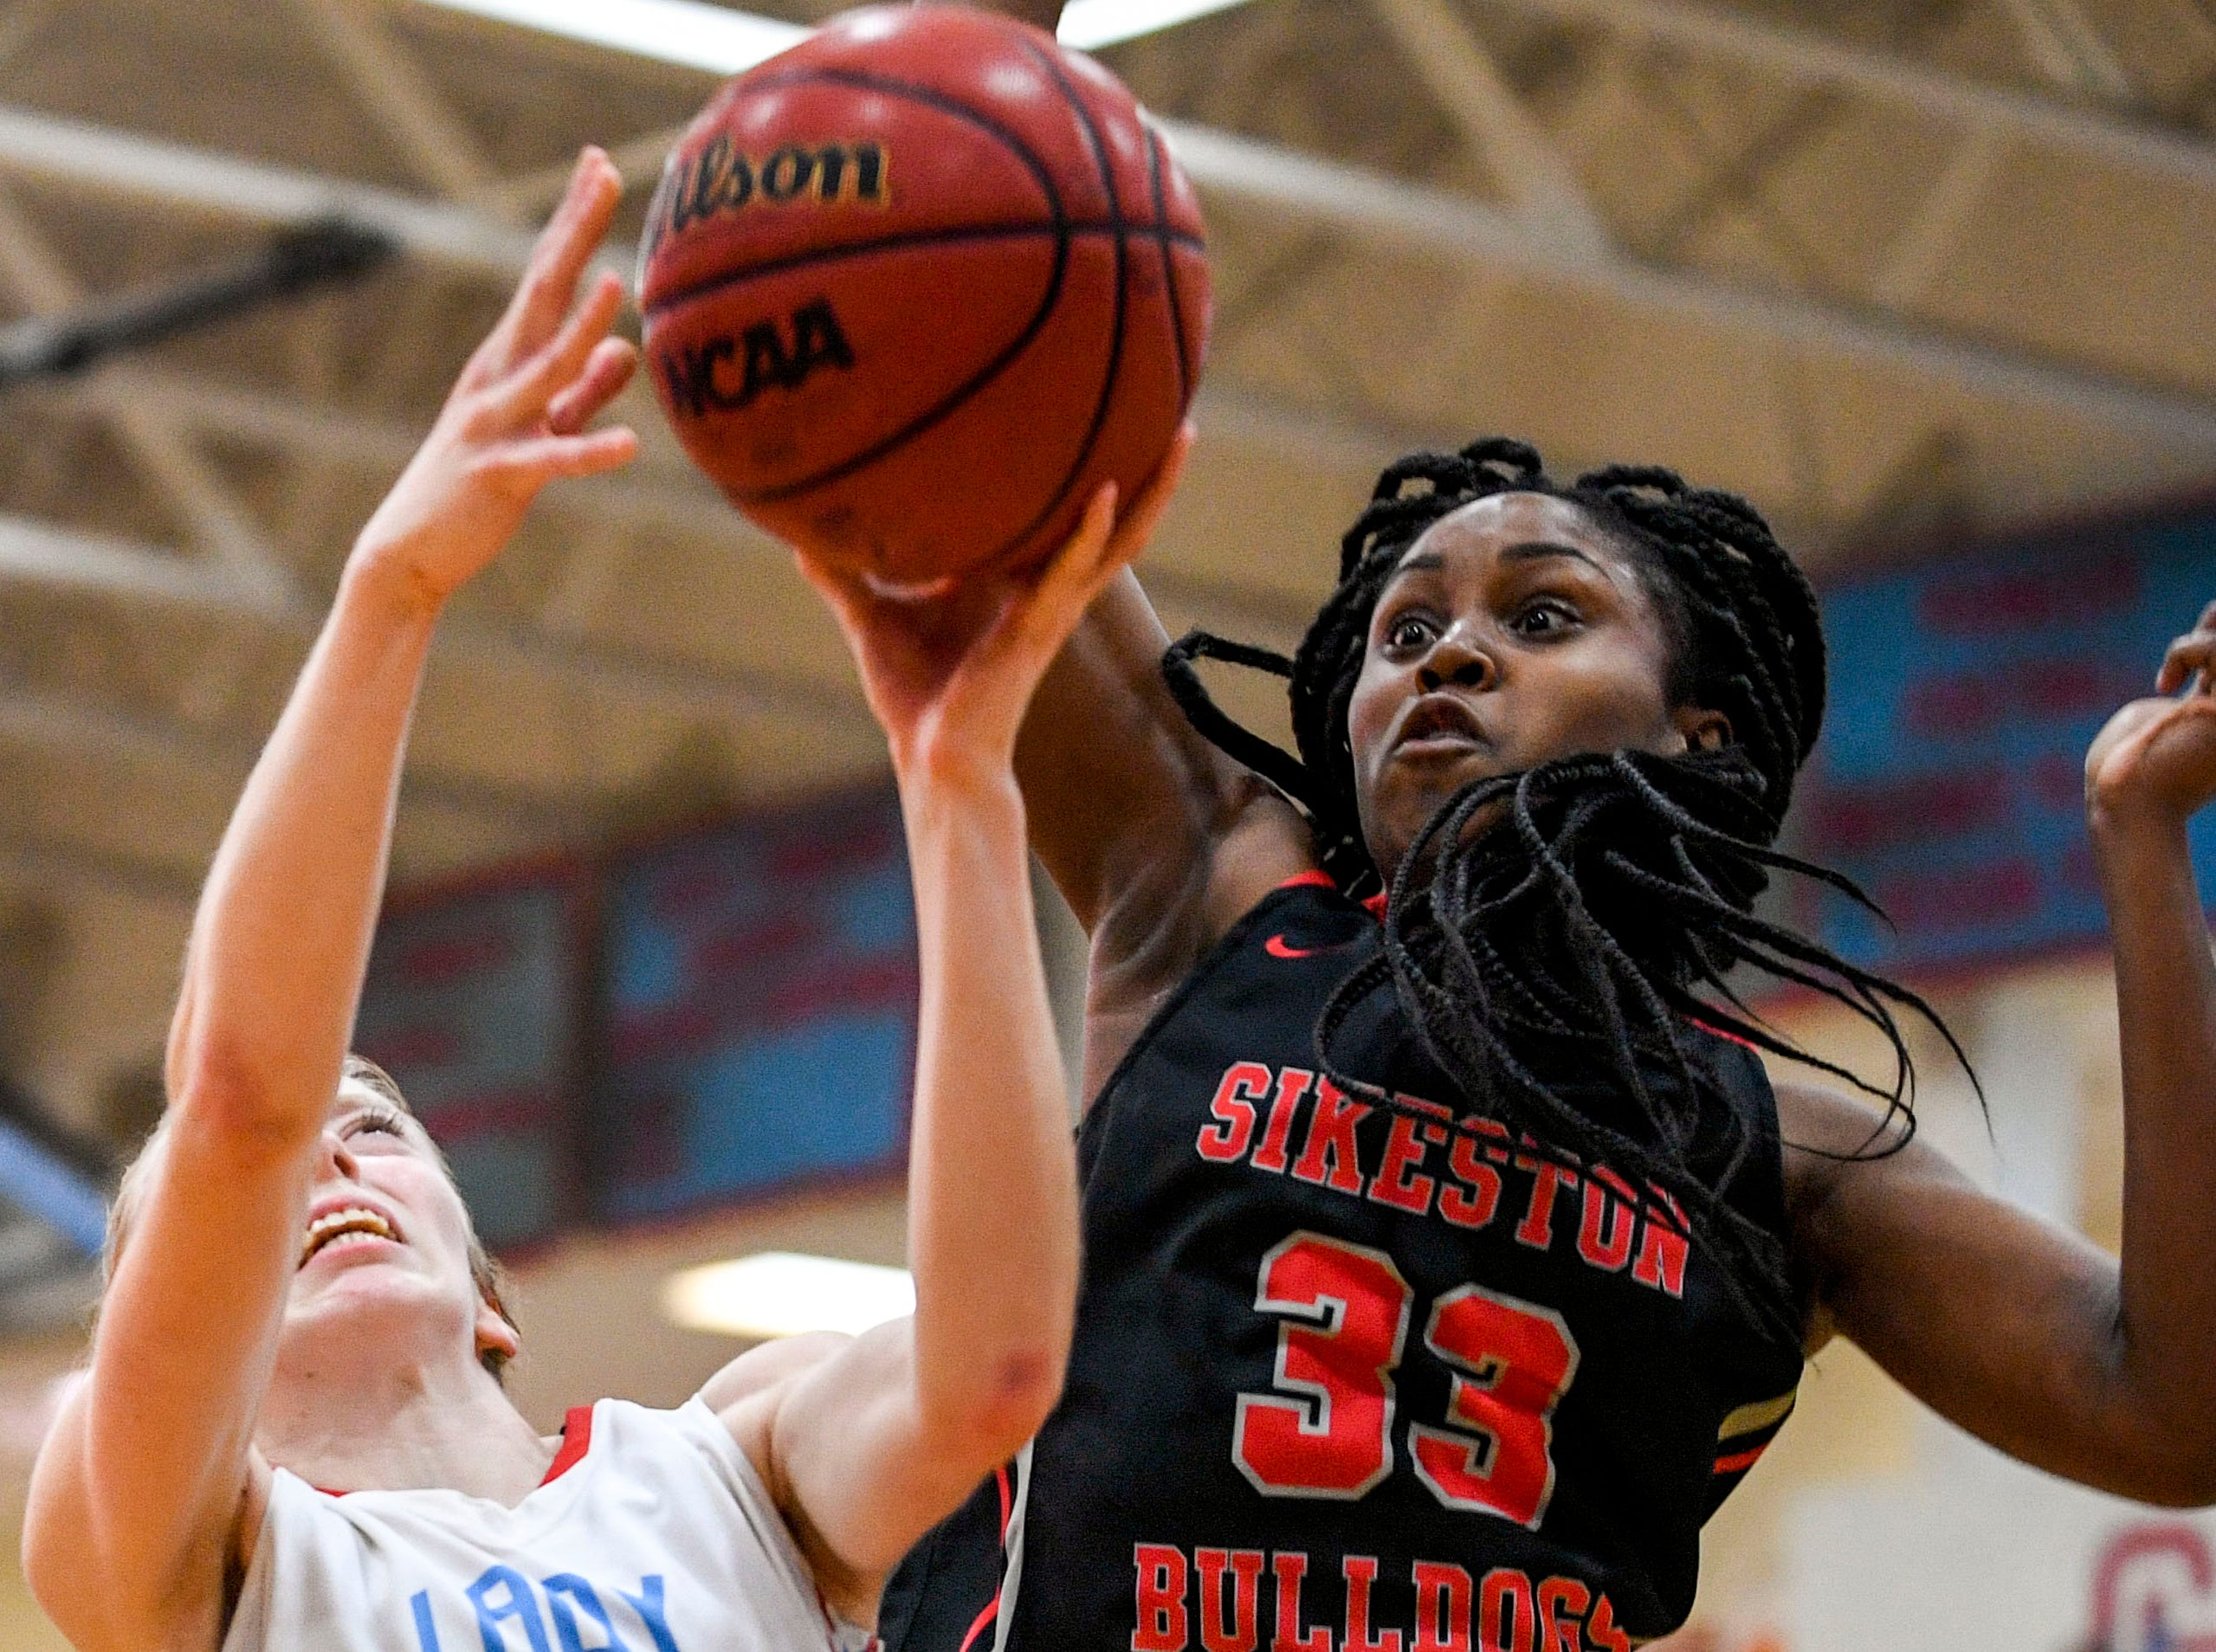 Sikeston's Karris Allen (33) jumps to try and block a shot from Gibson County's KJ White (32) in a TSSAA girls basketball game between Gibson County and Sikeston (MO) in the Gibson County Christmas Tournament at Gibson County High School in Dyer, Tenn., on Thursday, Dec. 20, 2018.